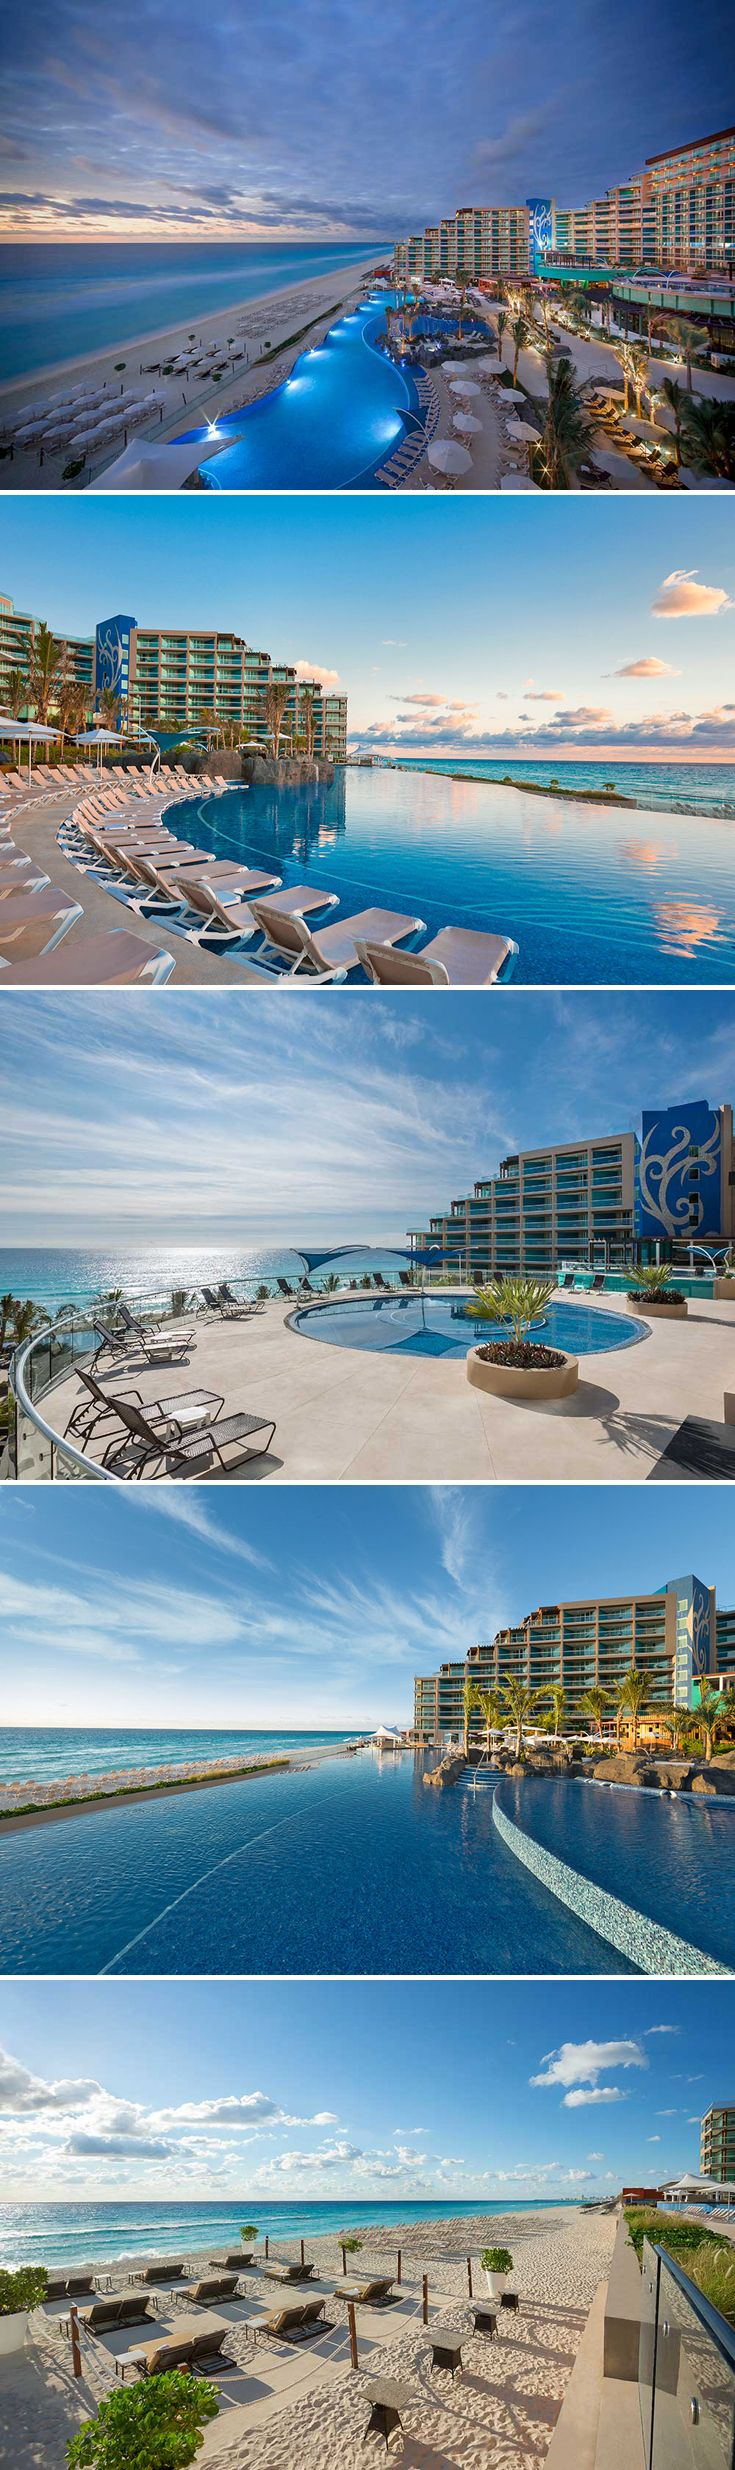 The Hard Rock Cancun Hotel is an all inclusive beachfront resort along the Cancun Hotel Zone. The 601-room resort offers guests a wide variety of suites, restaurants, and bars.